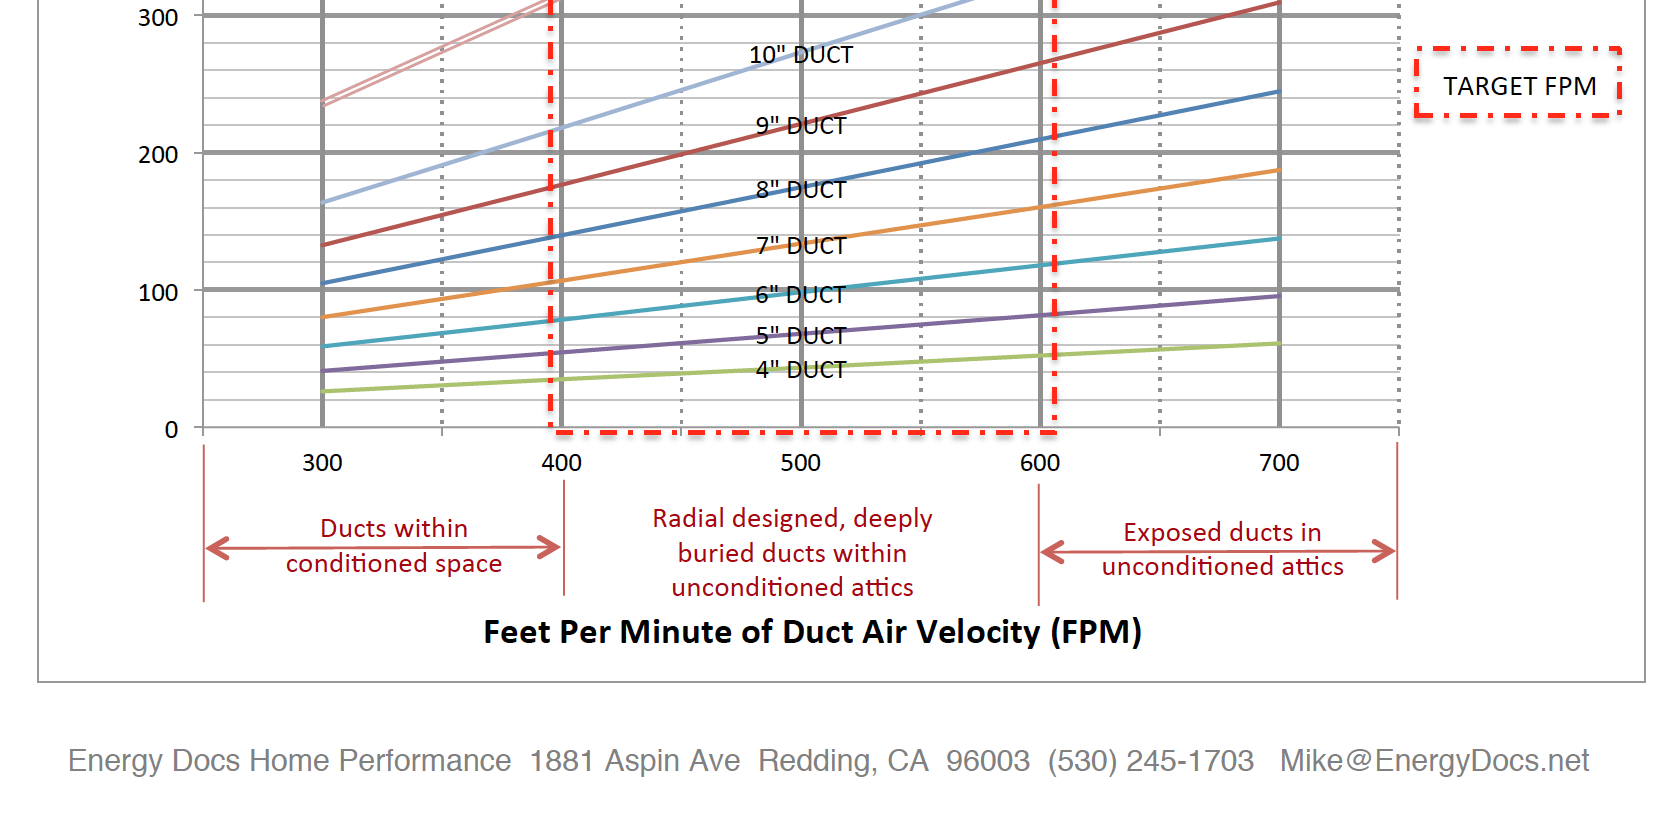 Duct sizing tool created by Mike MacFarland (Click to download full pdf)